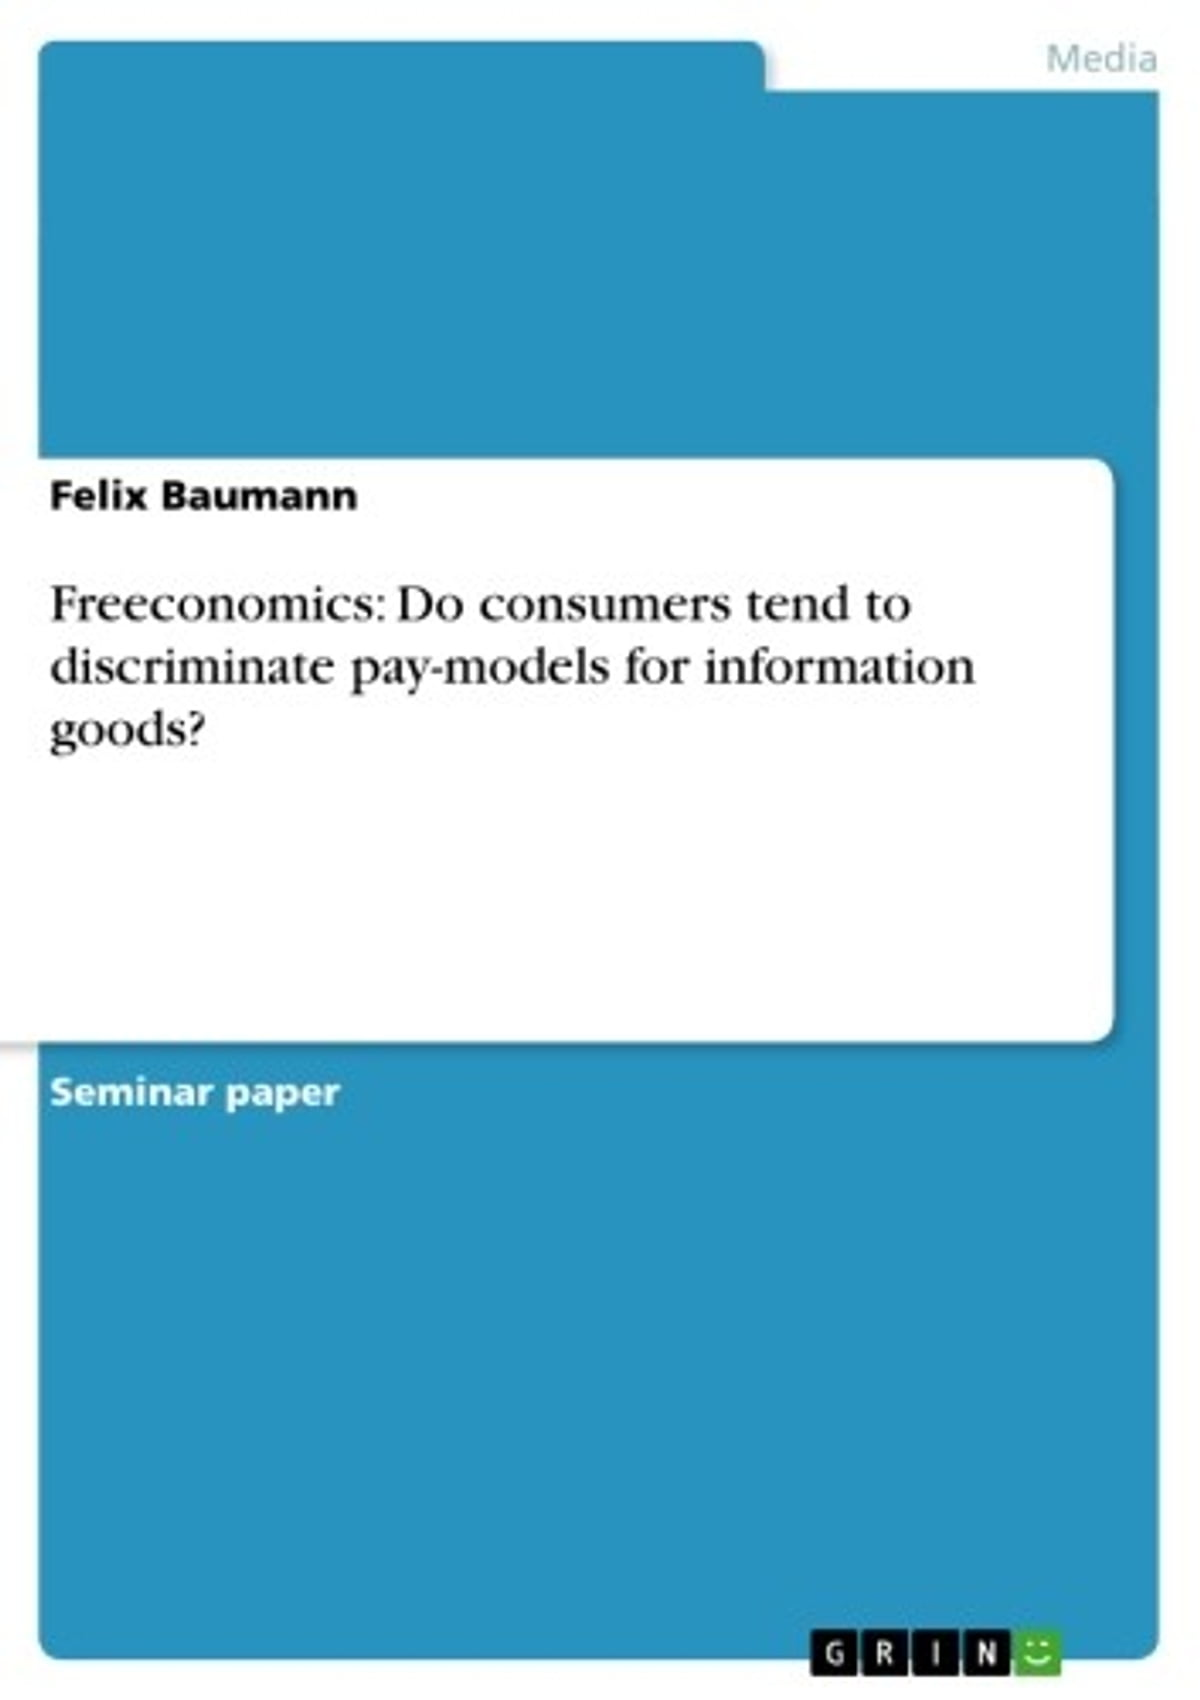 Freeconomics: Do consumers tend to discriminate pay-models for information  goods? eBook by Felix Baumann - 9783656351238 | Rakuten Kobo